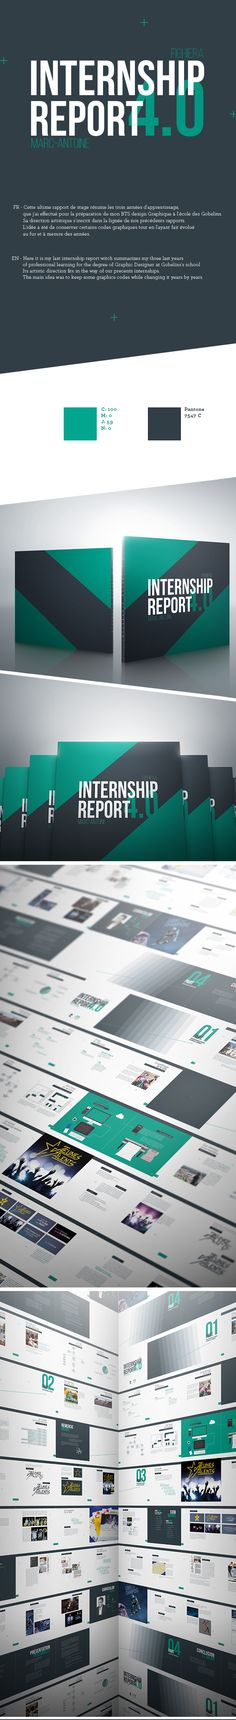 Dasmuse  Internship Report By Fauve Troiano Via Behance